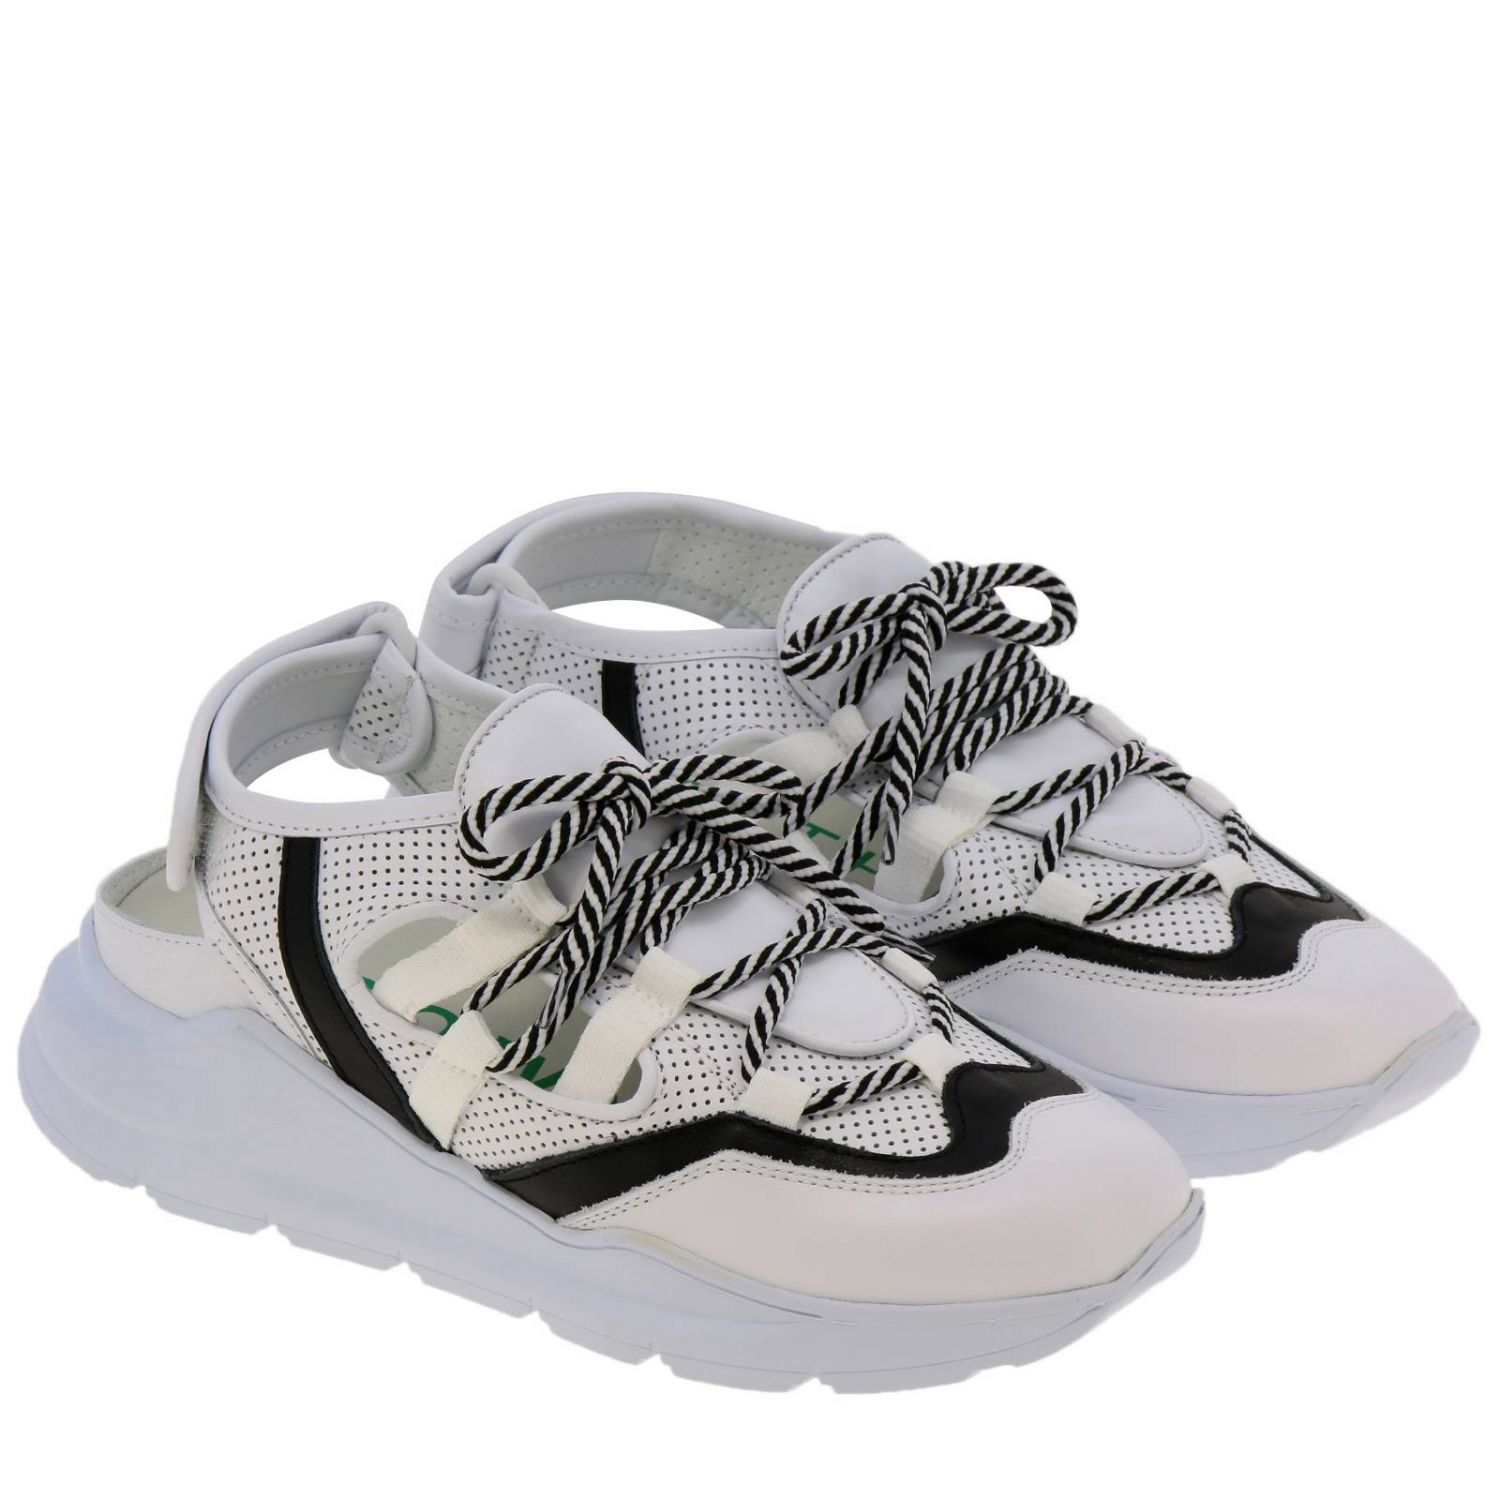 Shoes women Leather Crown white 2